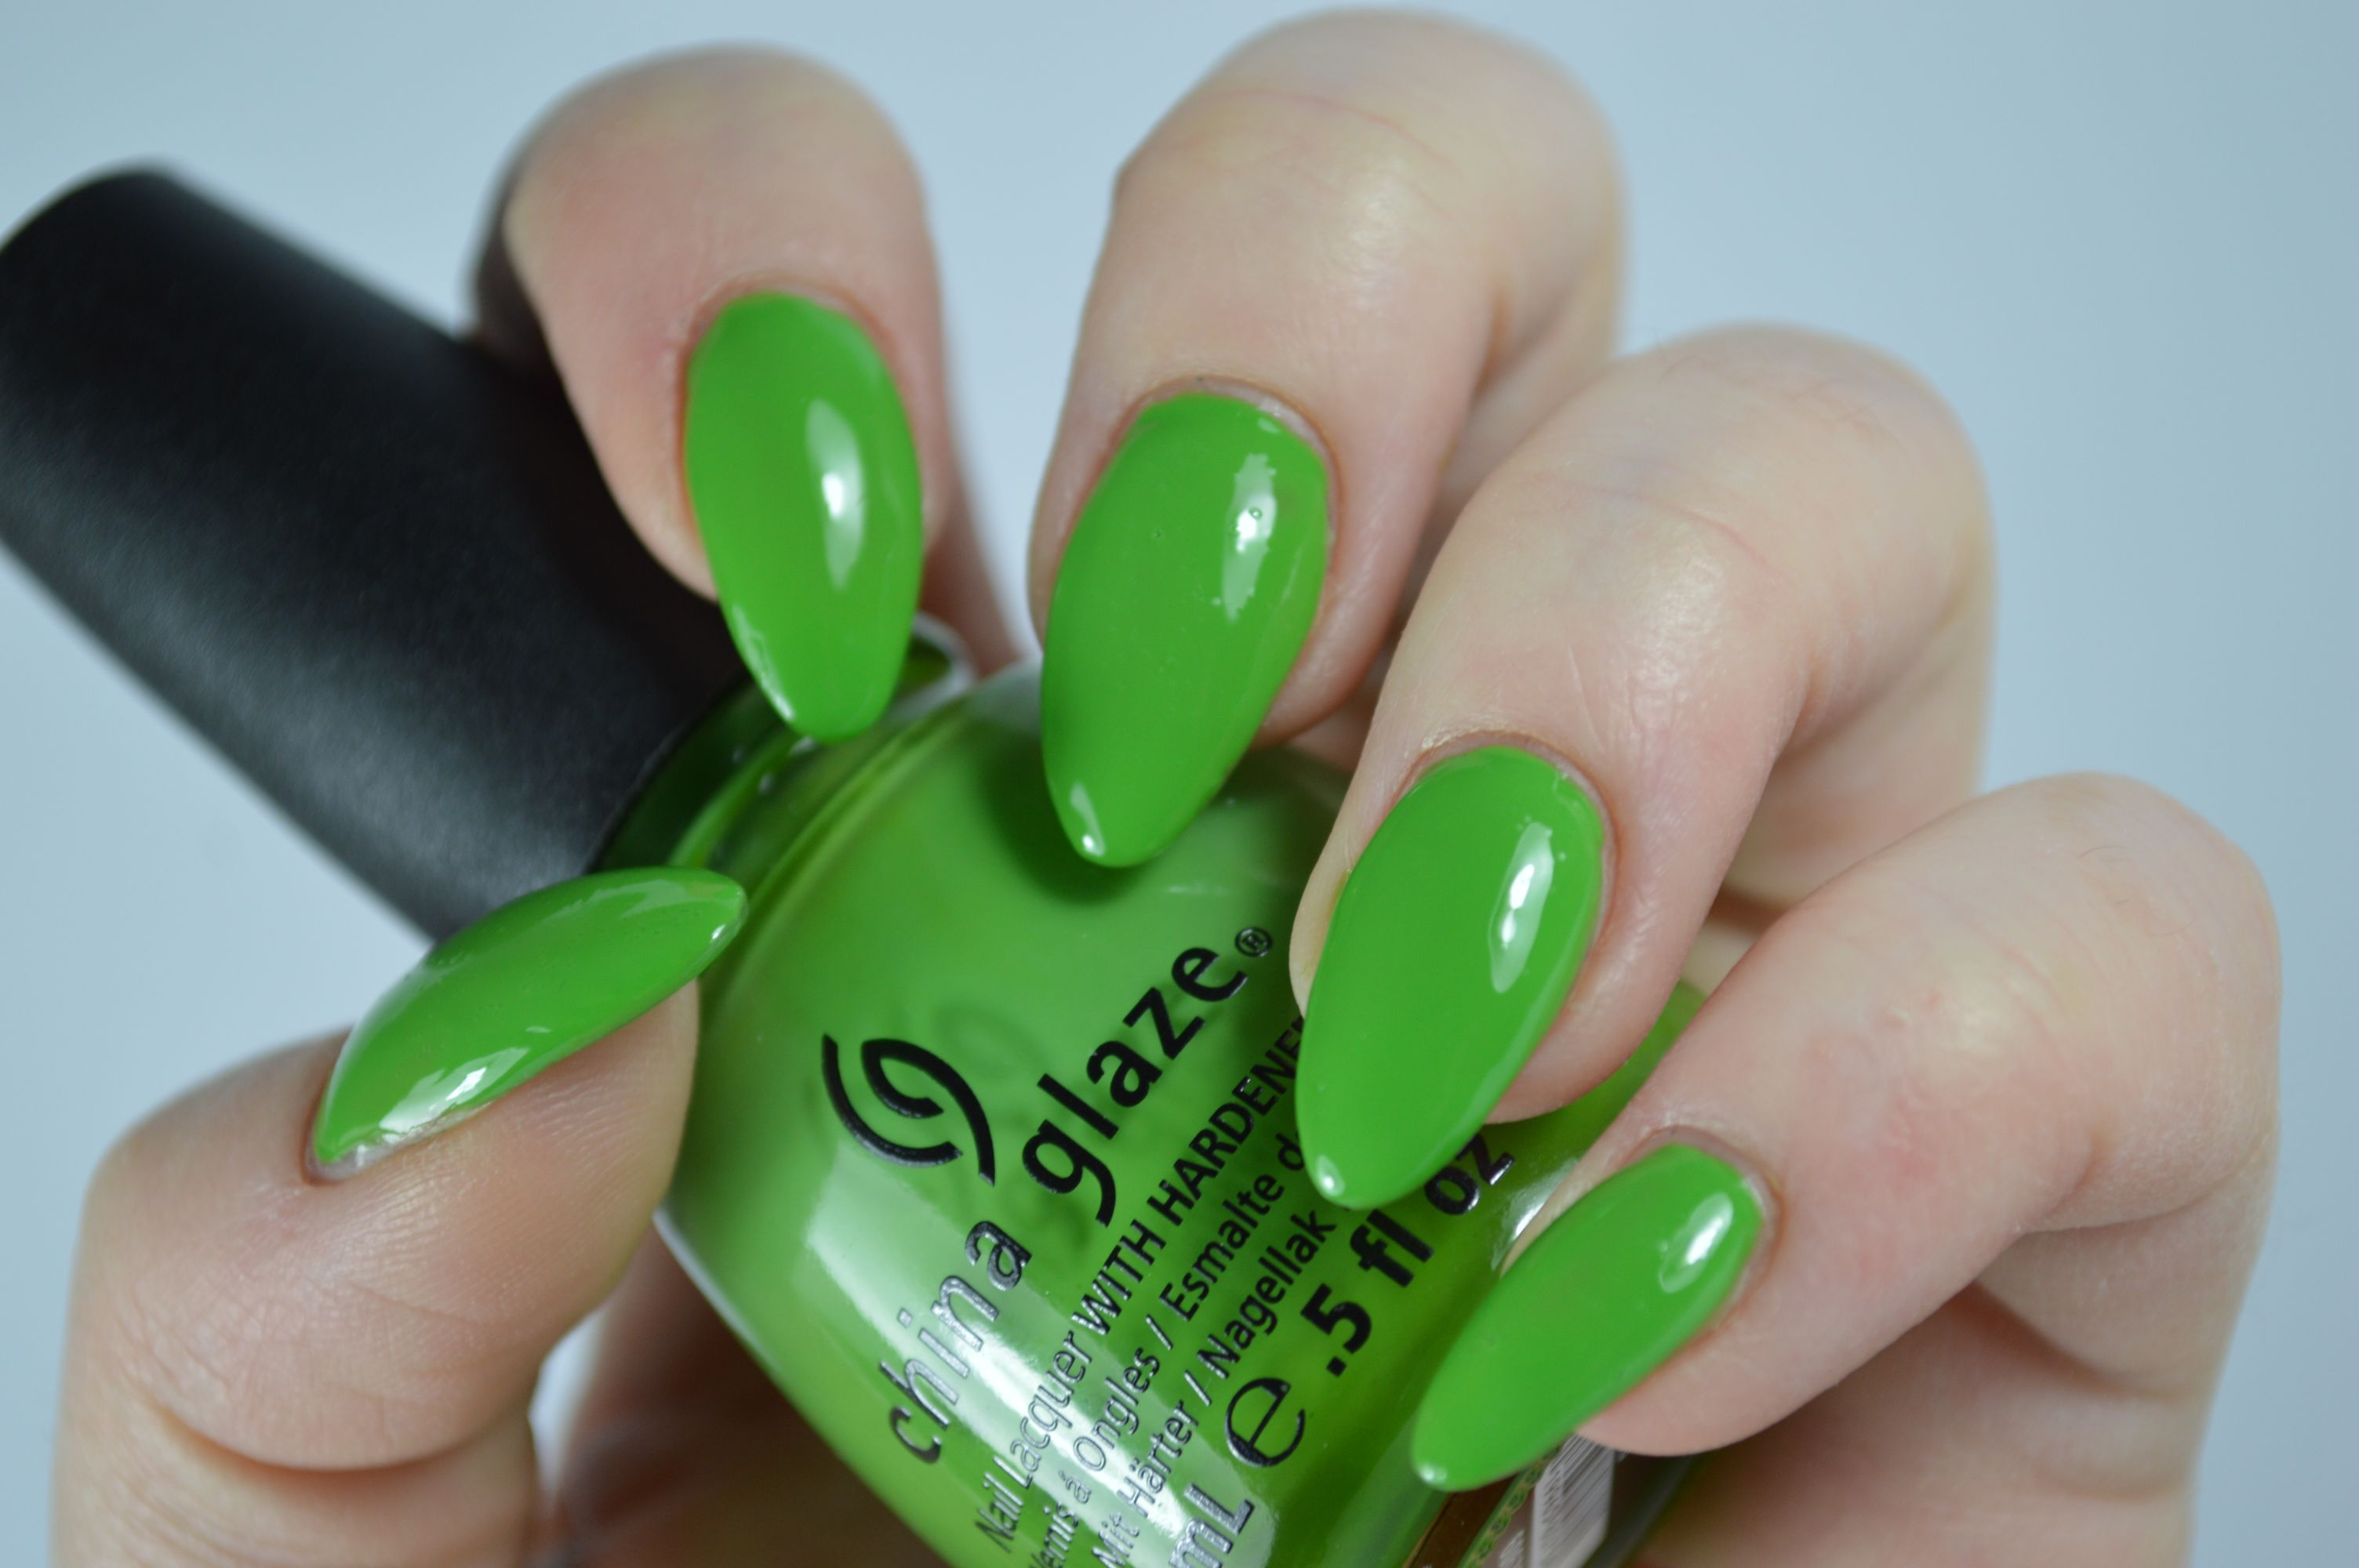 China_Glaze_Gaga_for_Green_Aufgepinselt